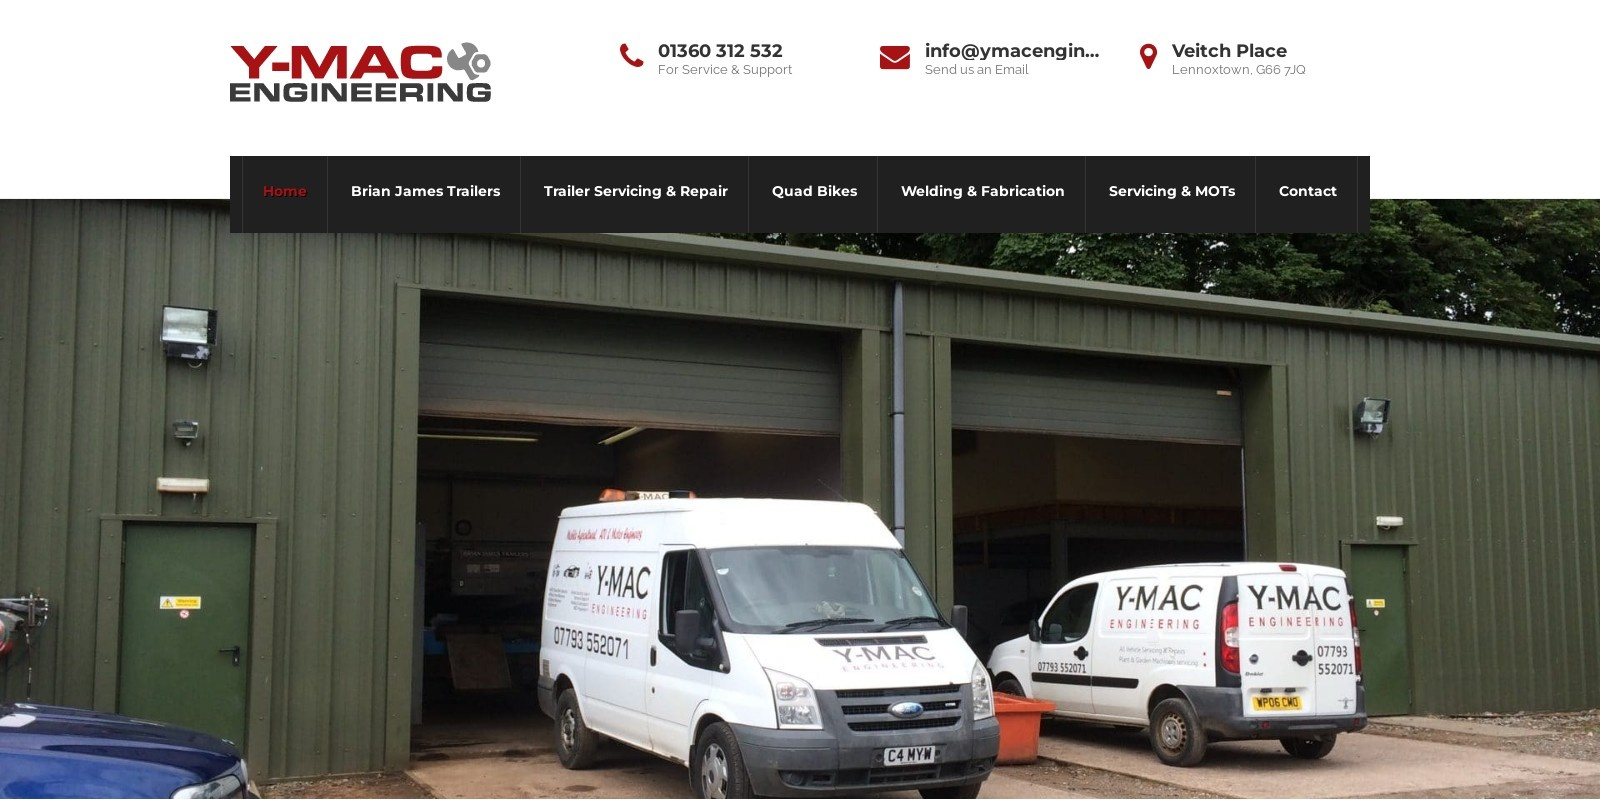 Preview of http://www.ymacengineering.co.uk